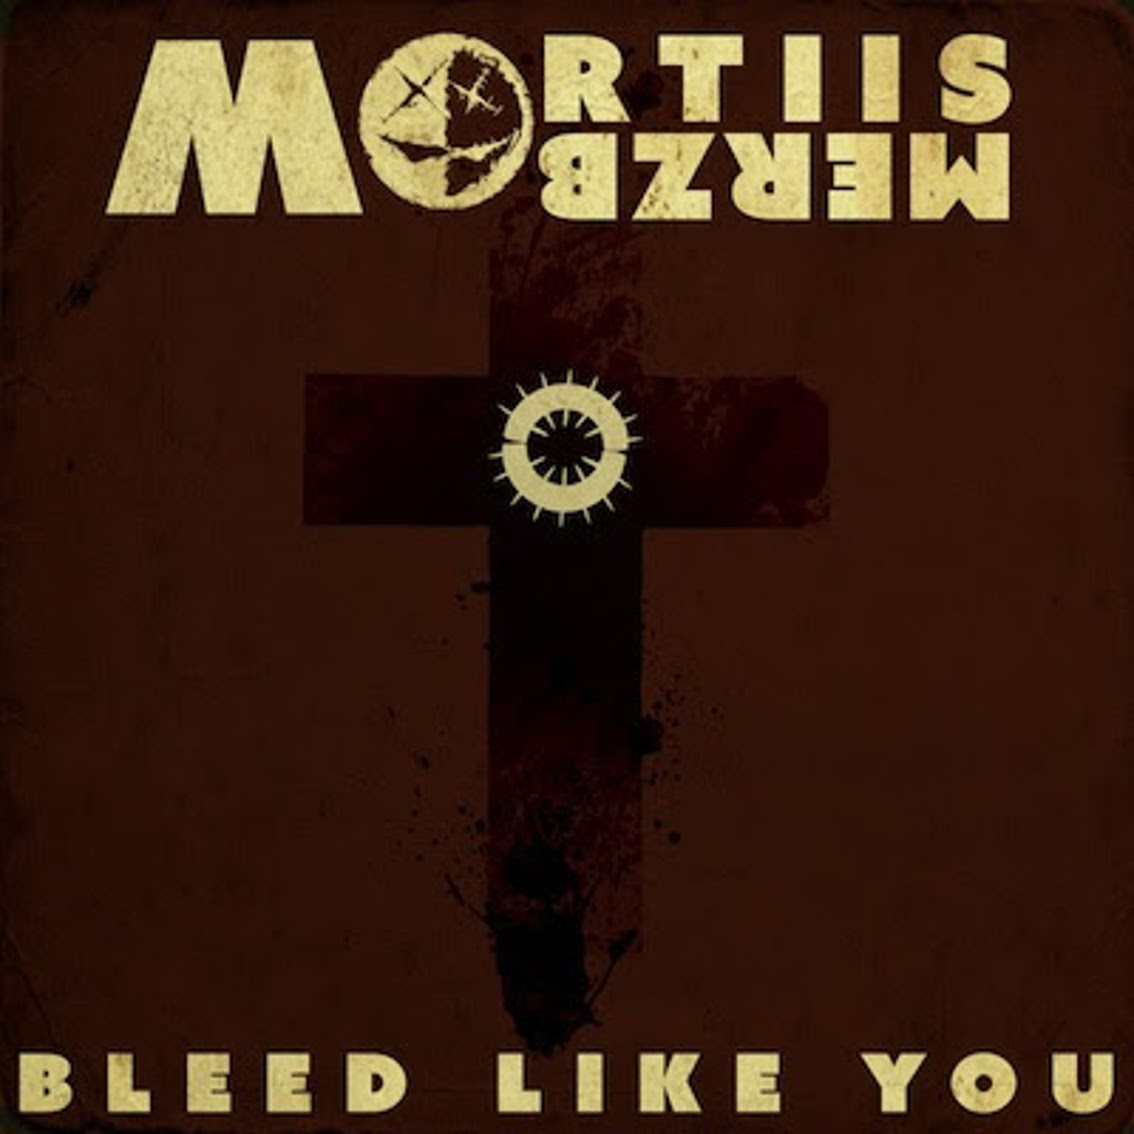 Japanese noise legend Merzbow mutilates Mortiis on latest single